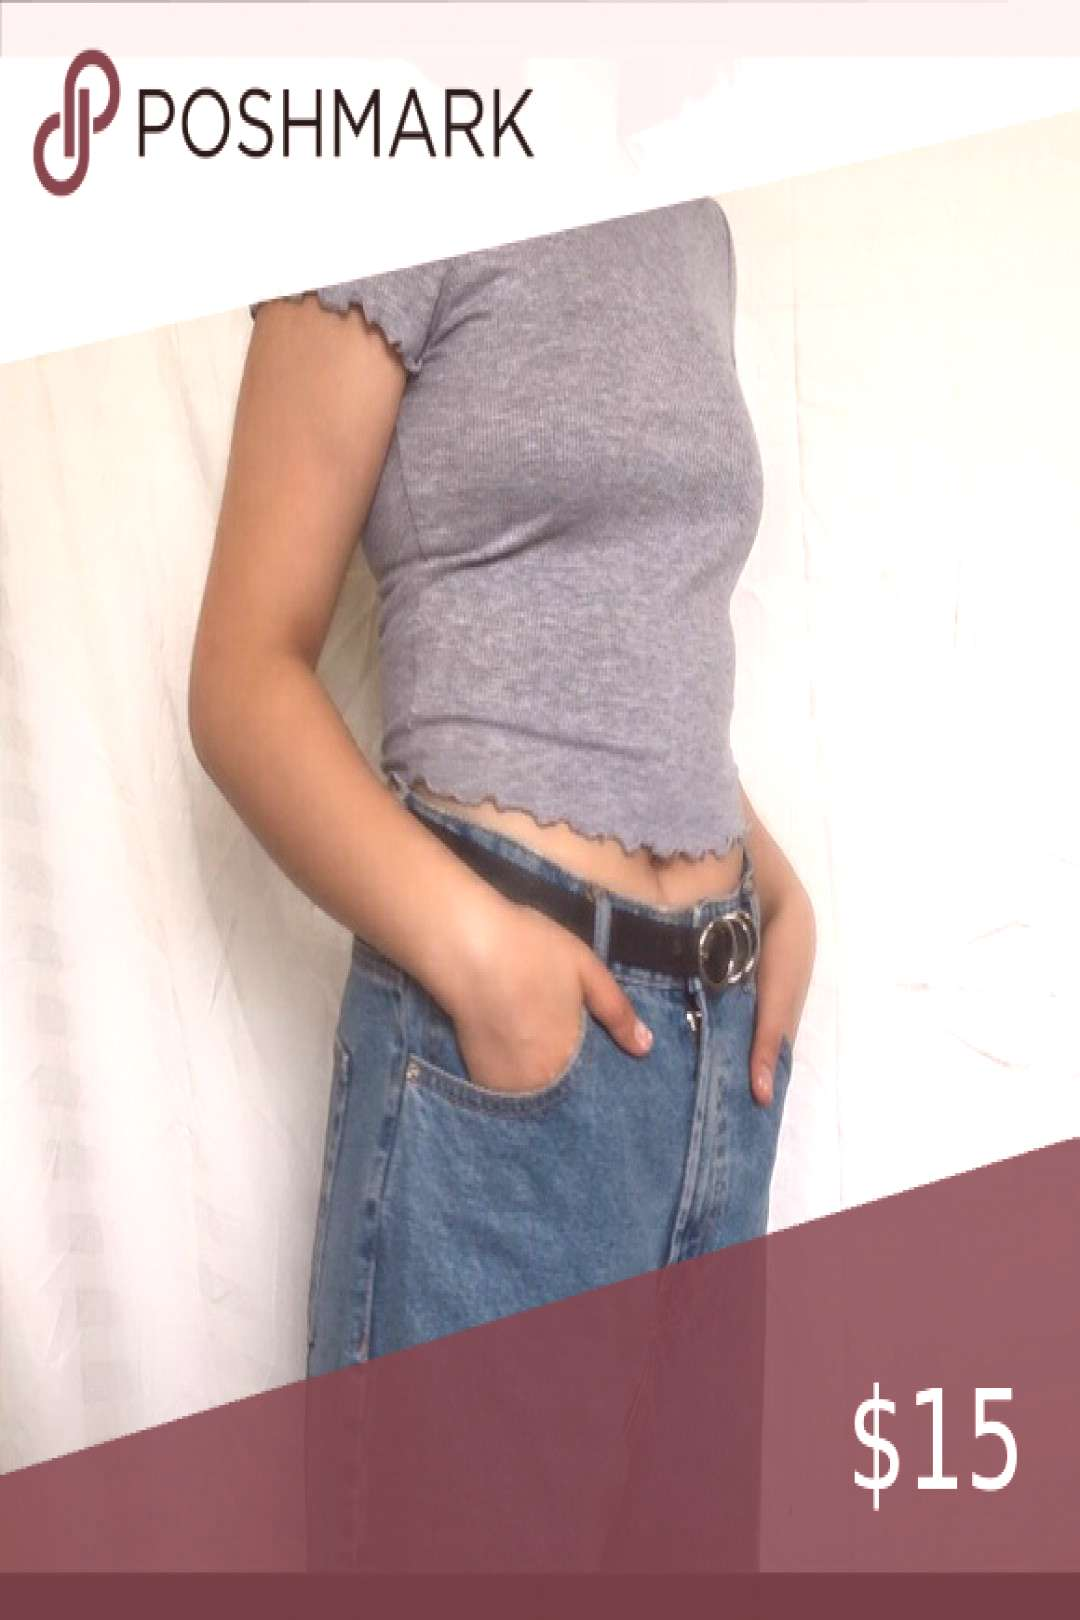 Stylish grey ribbed shirt with ruffled sleeves! Really cute and in style. Fits like a size medium m